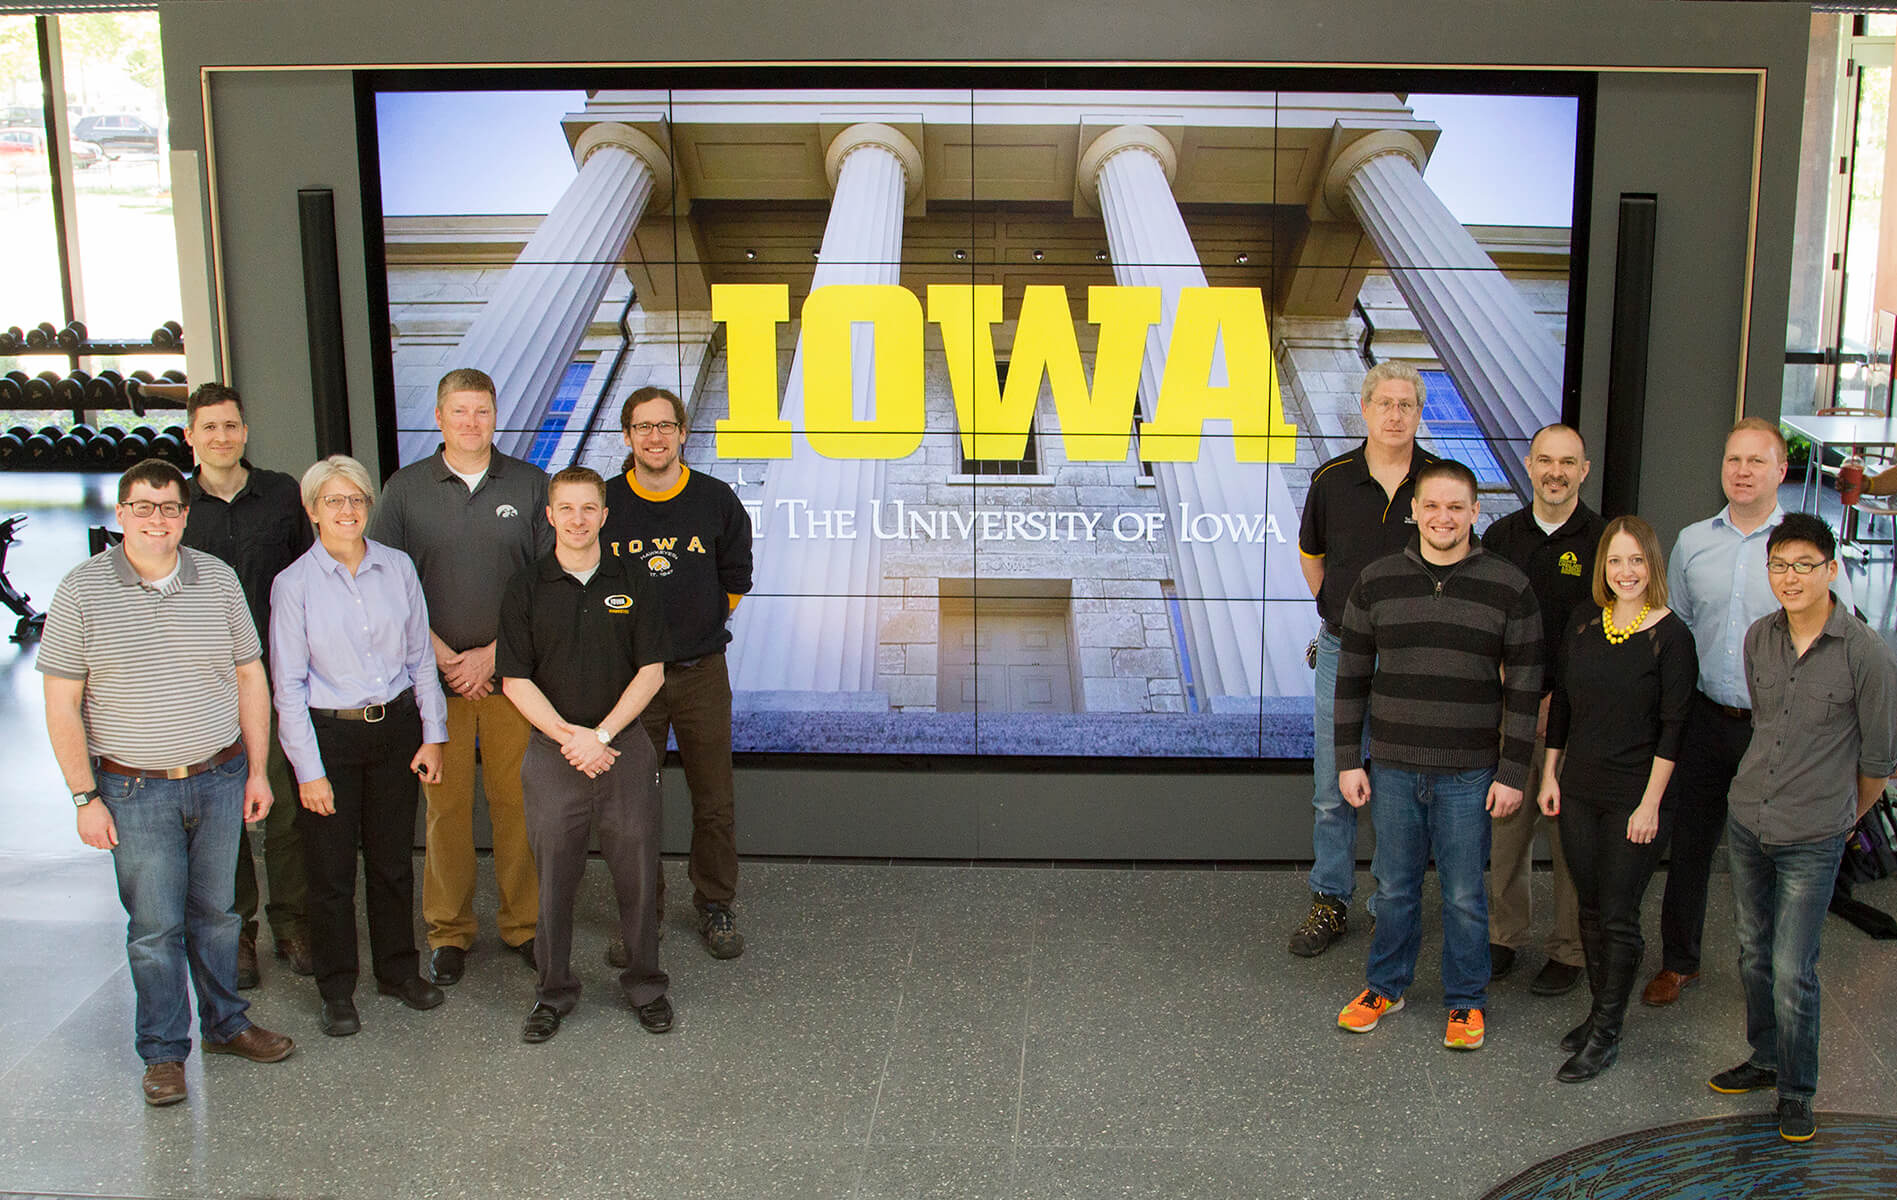 People standing at the sides of the screen showing the pillars and the word IOWA